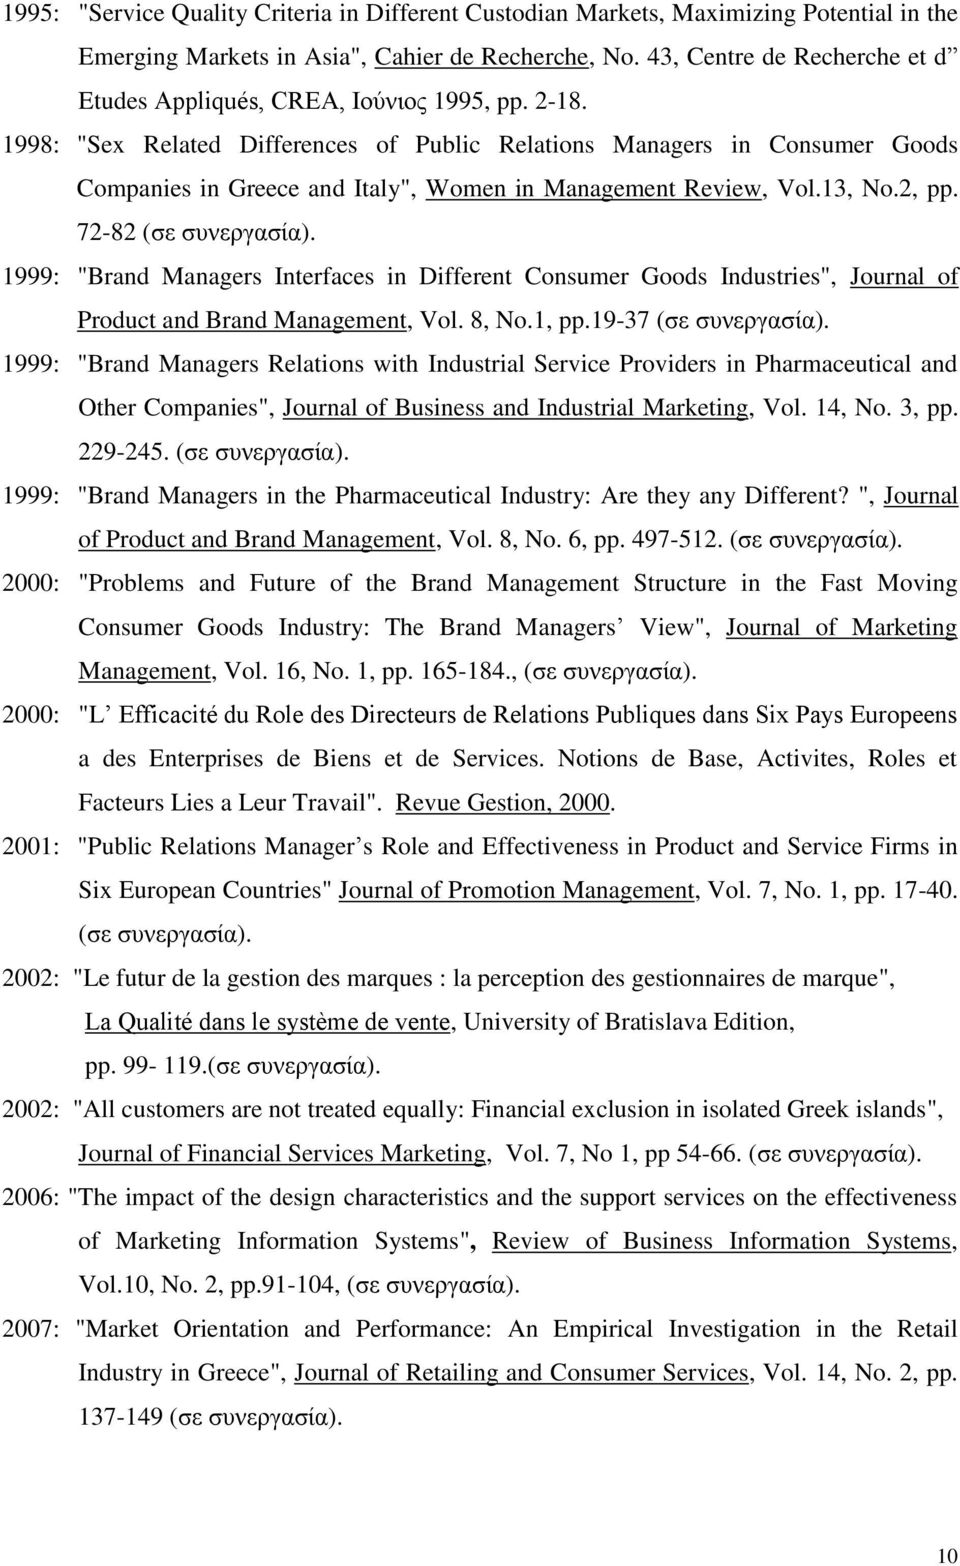 "1998: ""Sex Related Differences of Public Relations Managers in Consumer Goods Companies in Greece and Italy"", Women in Management Review, Vol.13, No.2, pp. 72-82 (σε συνεργασία)."